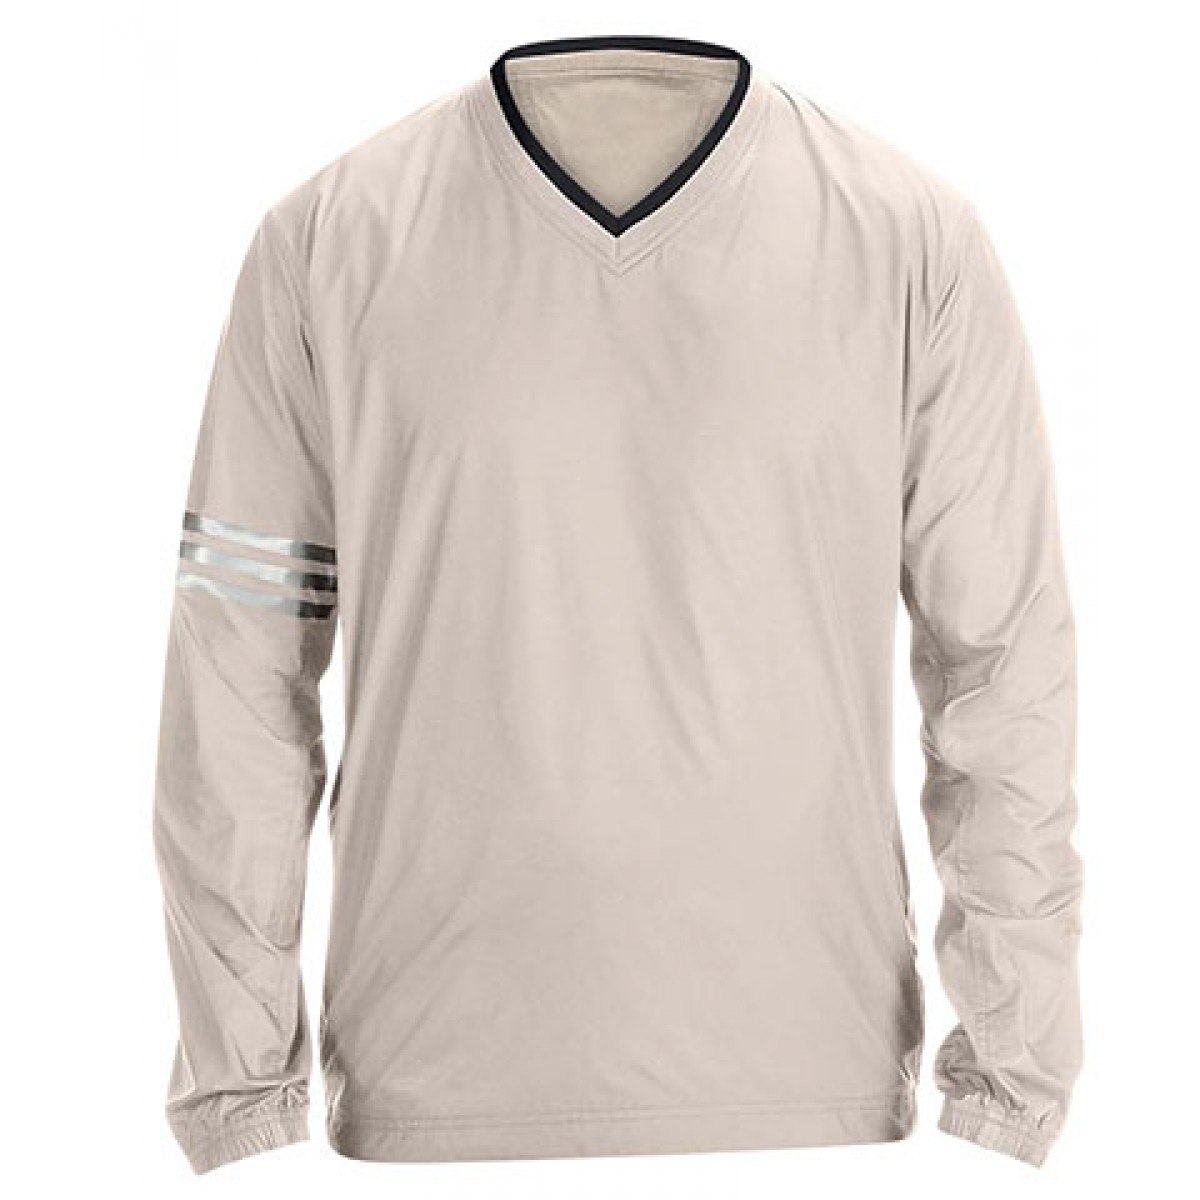 Adidas ClimaLite V-Neck Long Sleeve Wind Shirt-Brown-M